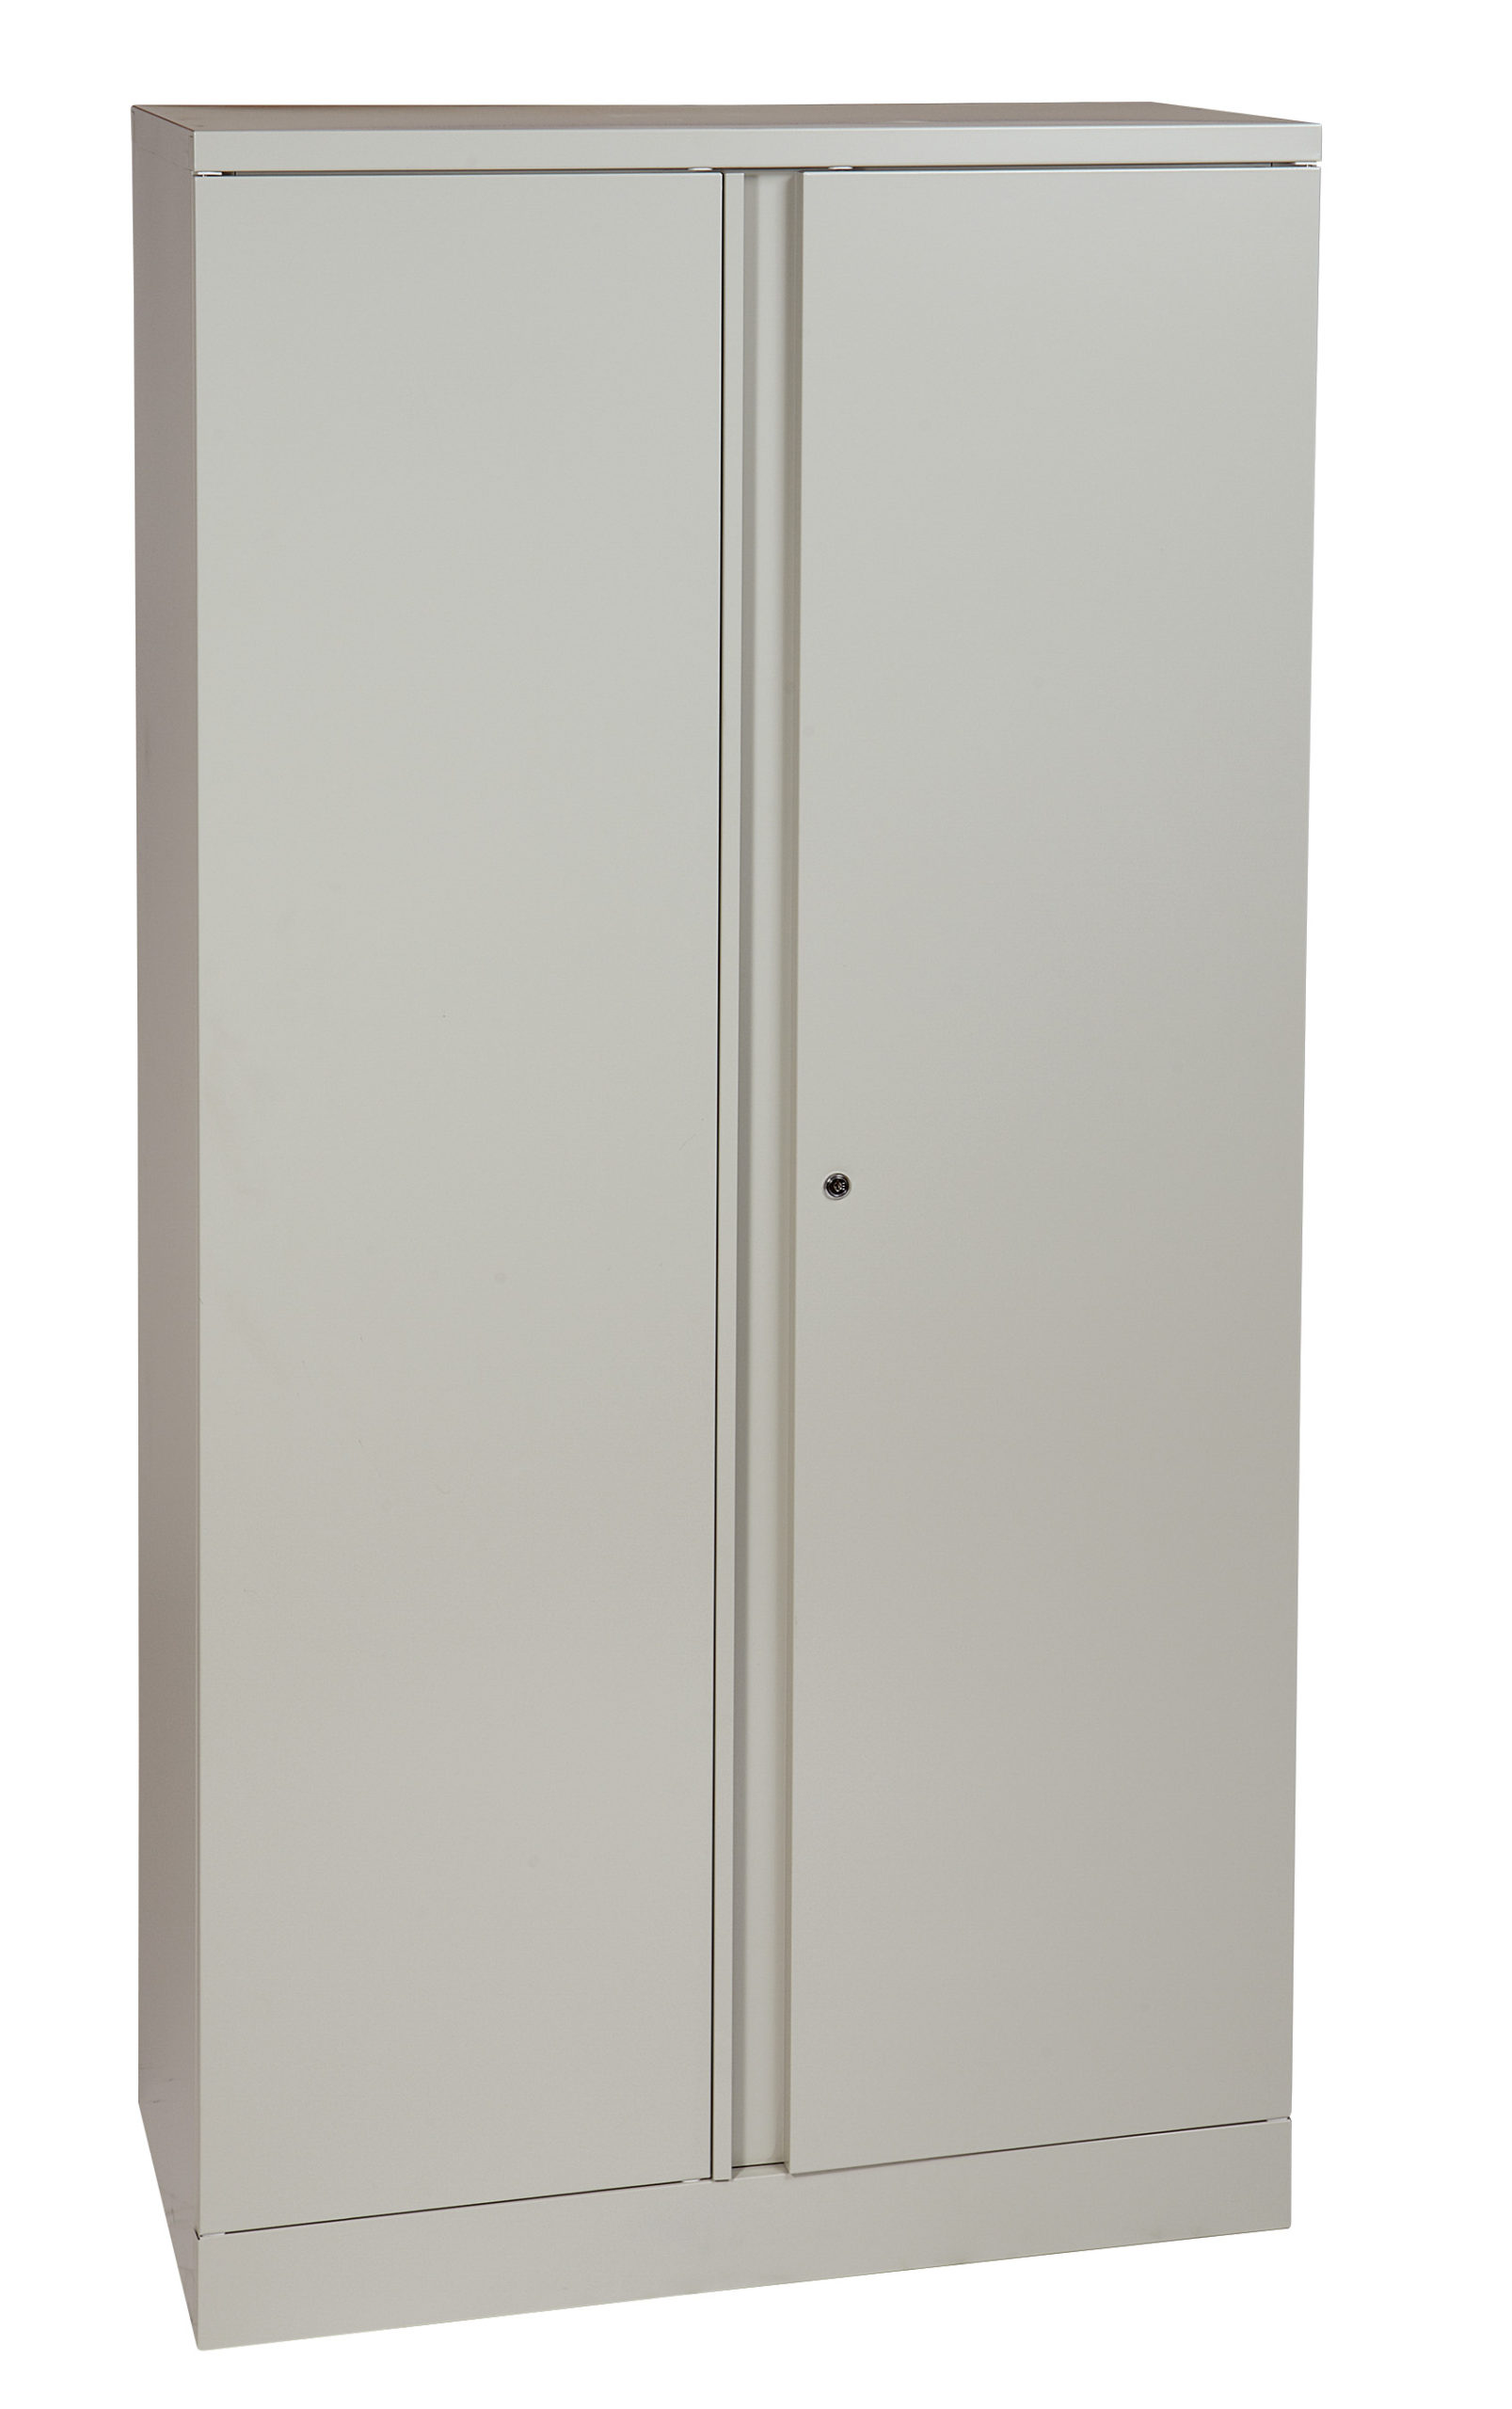 Picture of: New 72 H Metal Storage Cabinet By Office Star New And Used Office Furniture In Los Angeles And Orange County Nationwide Furniture